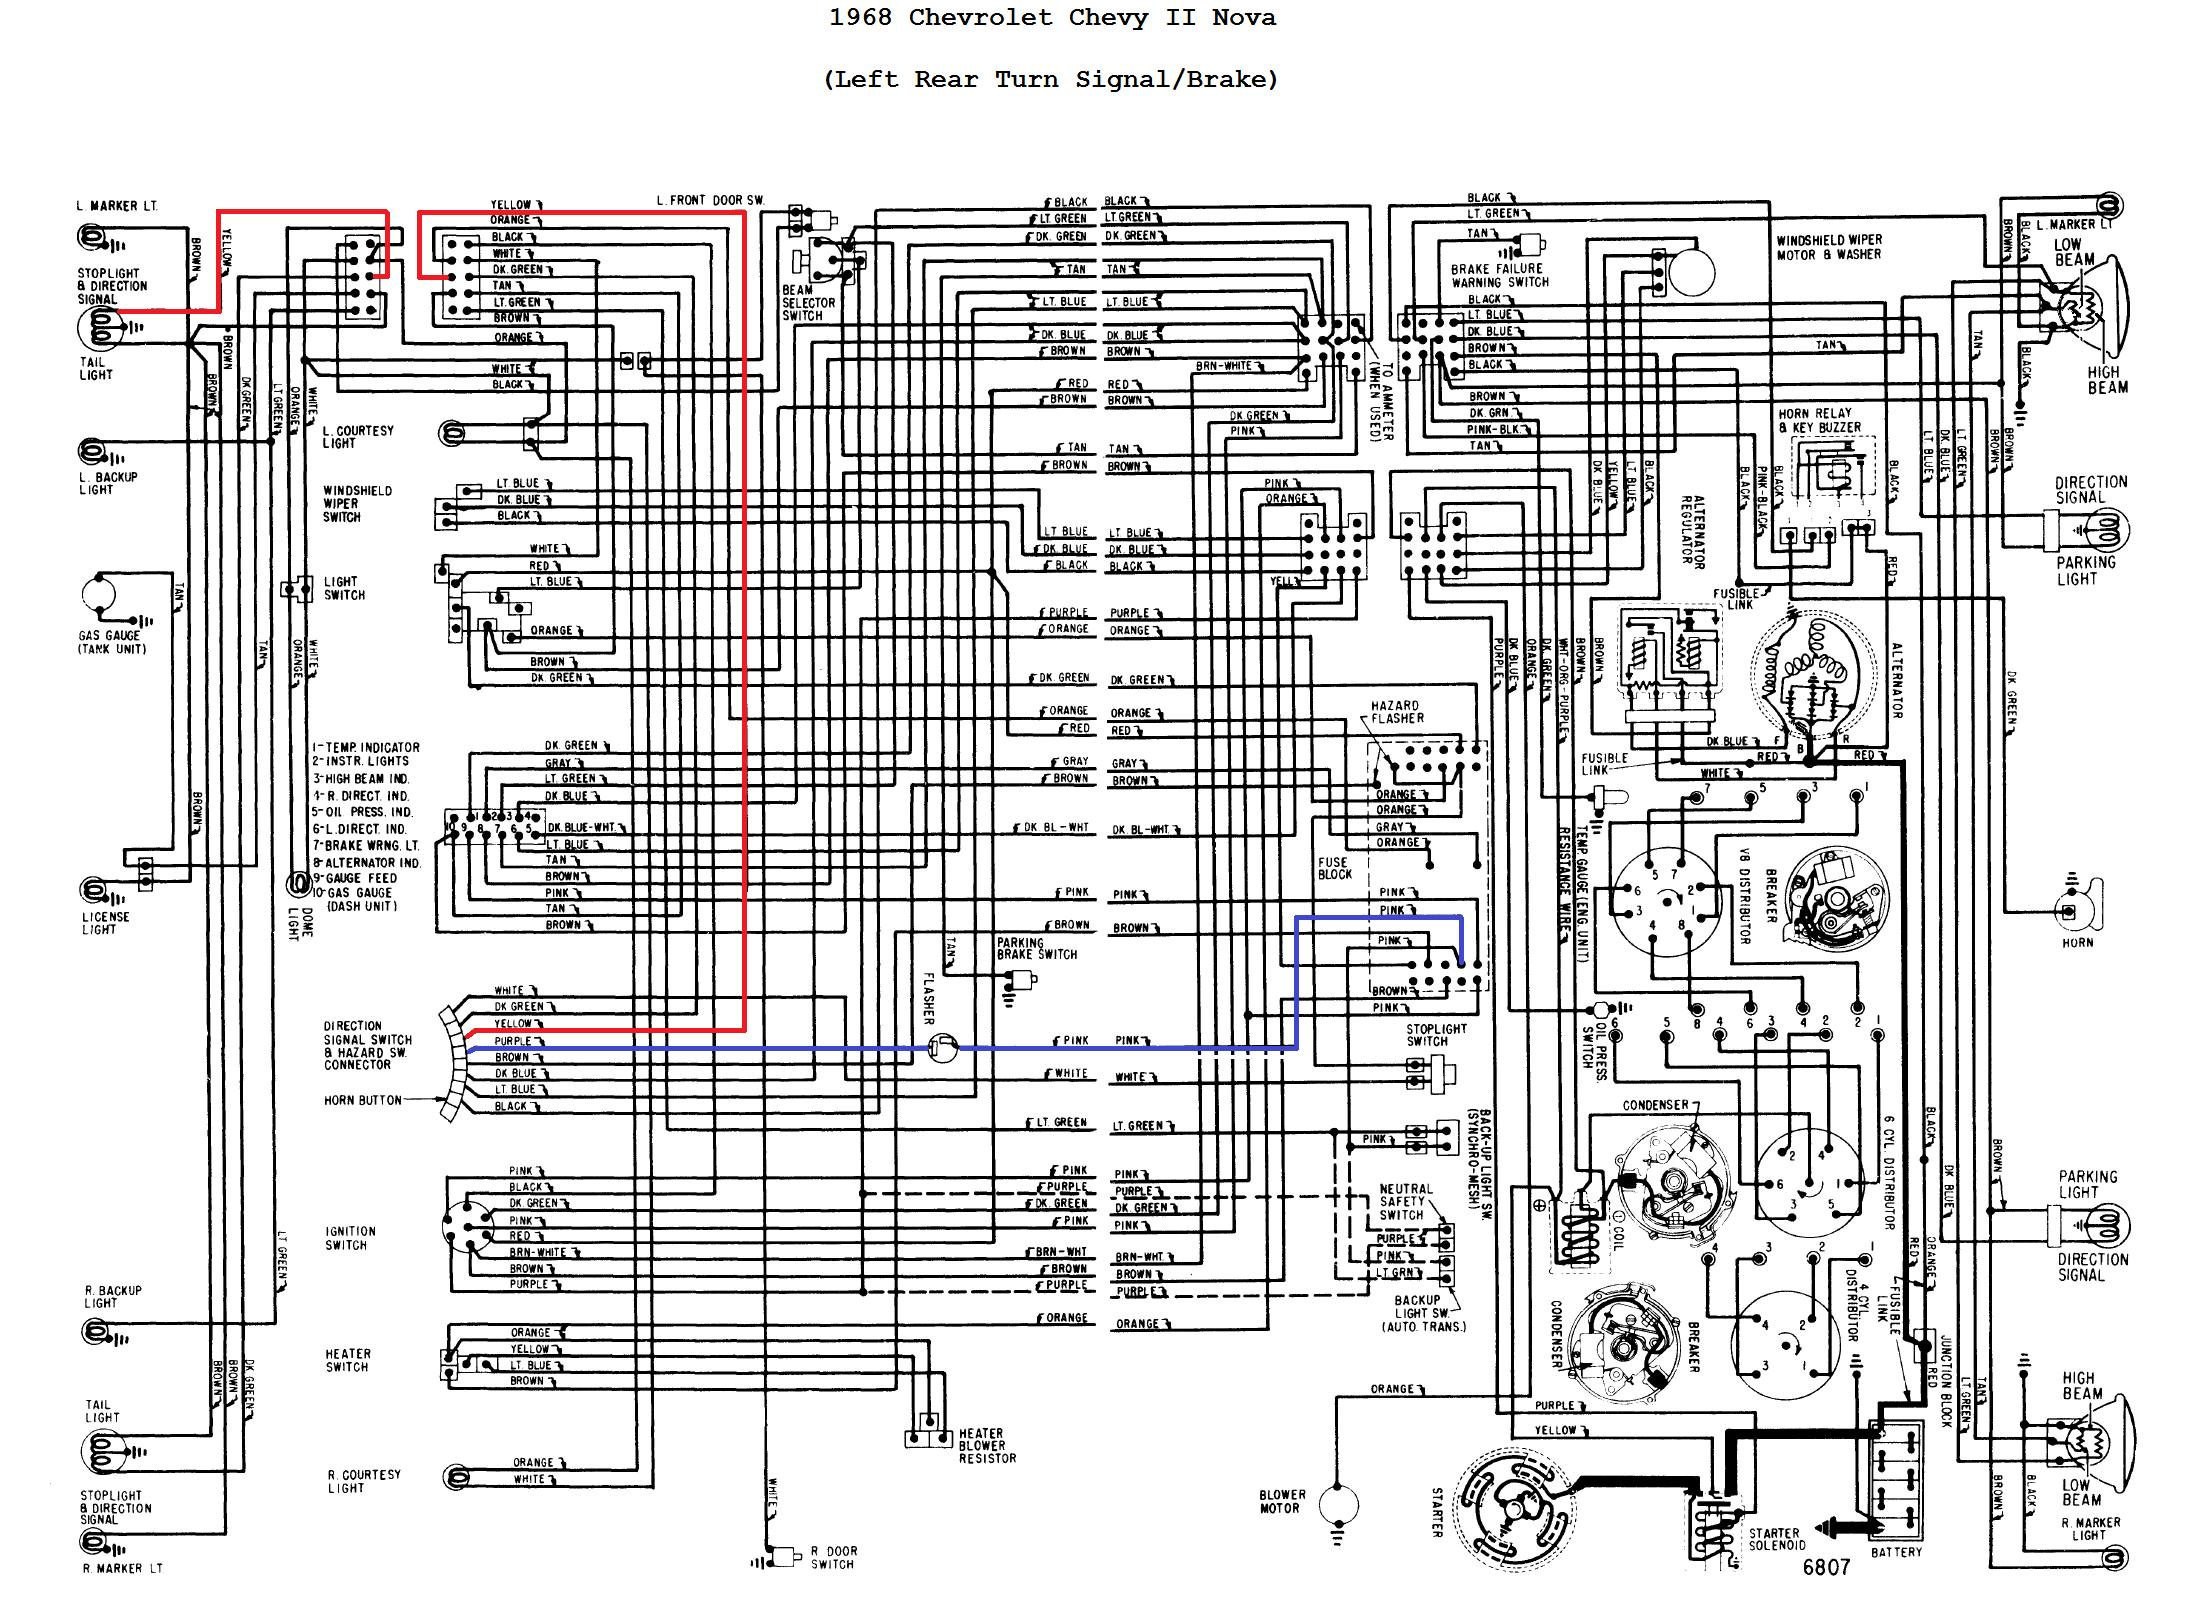 1969 Chevy Nova Wiring Diagram - Chevy Steering Column Wiring Diagram Free  Picture for Wiring Diagram SchematicsWiring Diagram Schematics